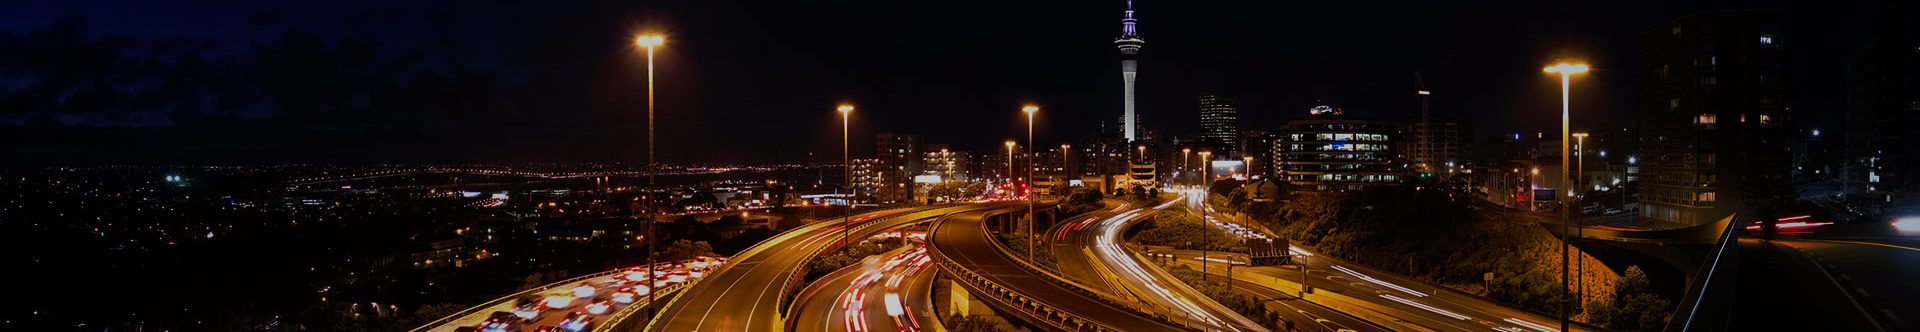 Highways and overpasses at night in Auckland